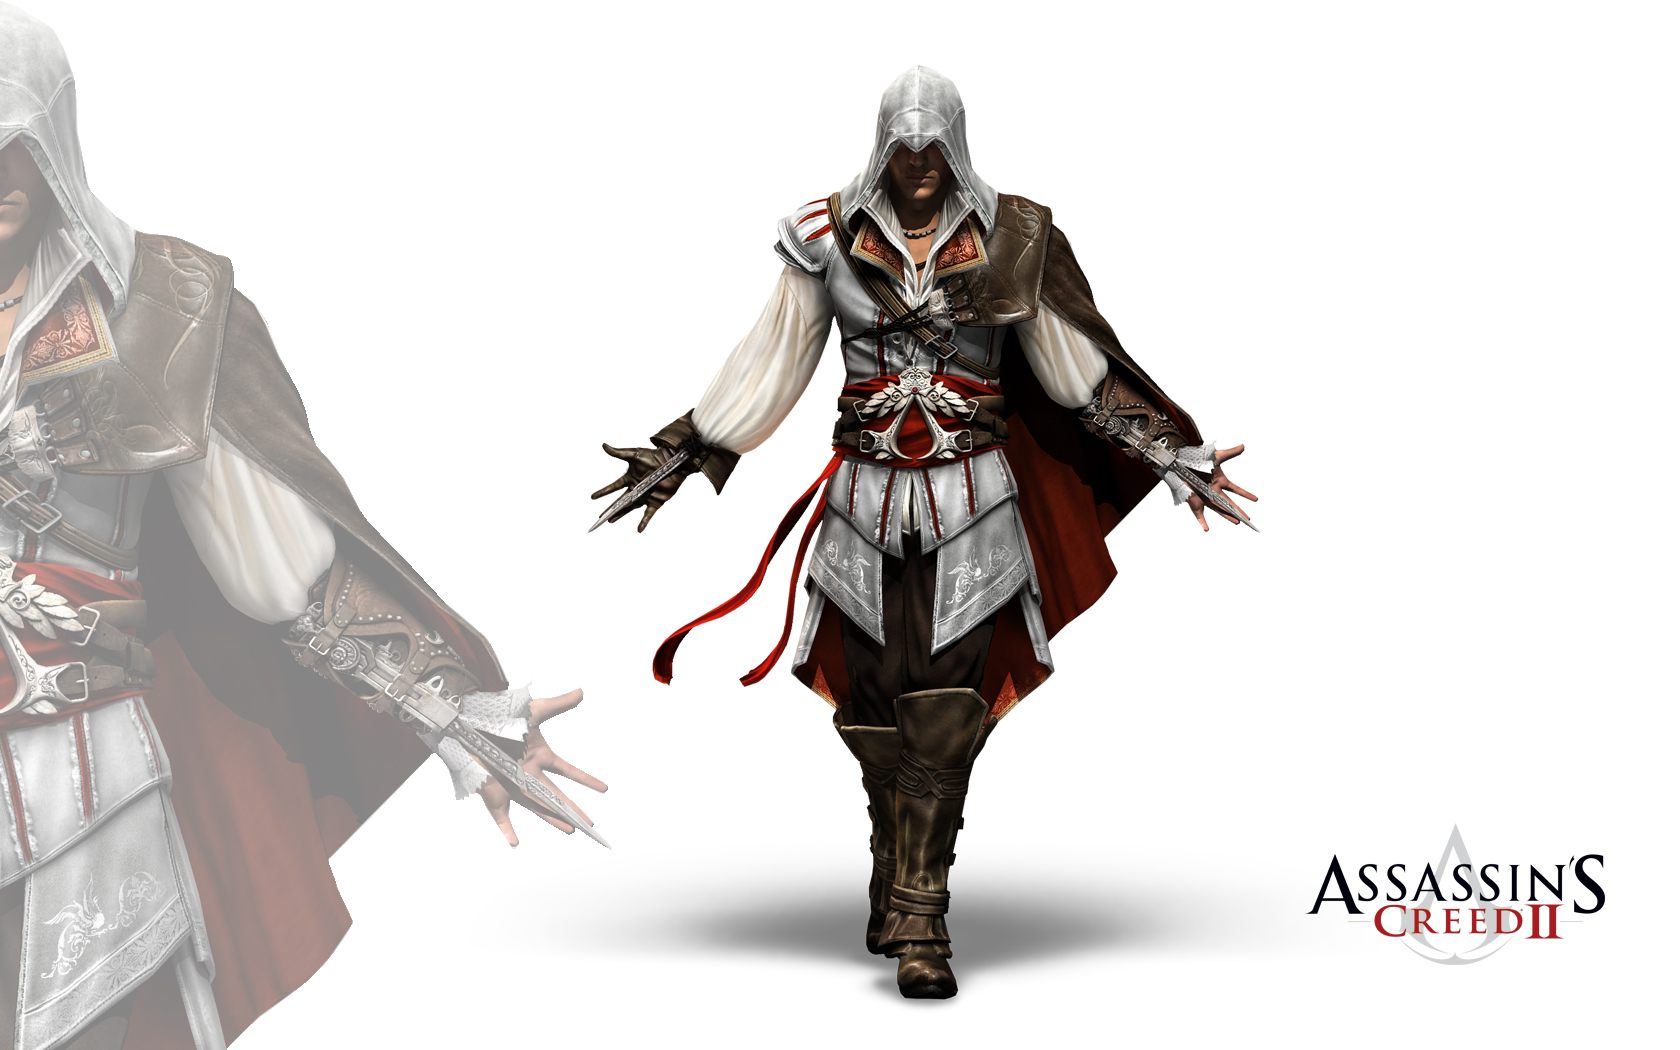 assassins-creed-2-wallpaper.jpg